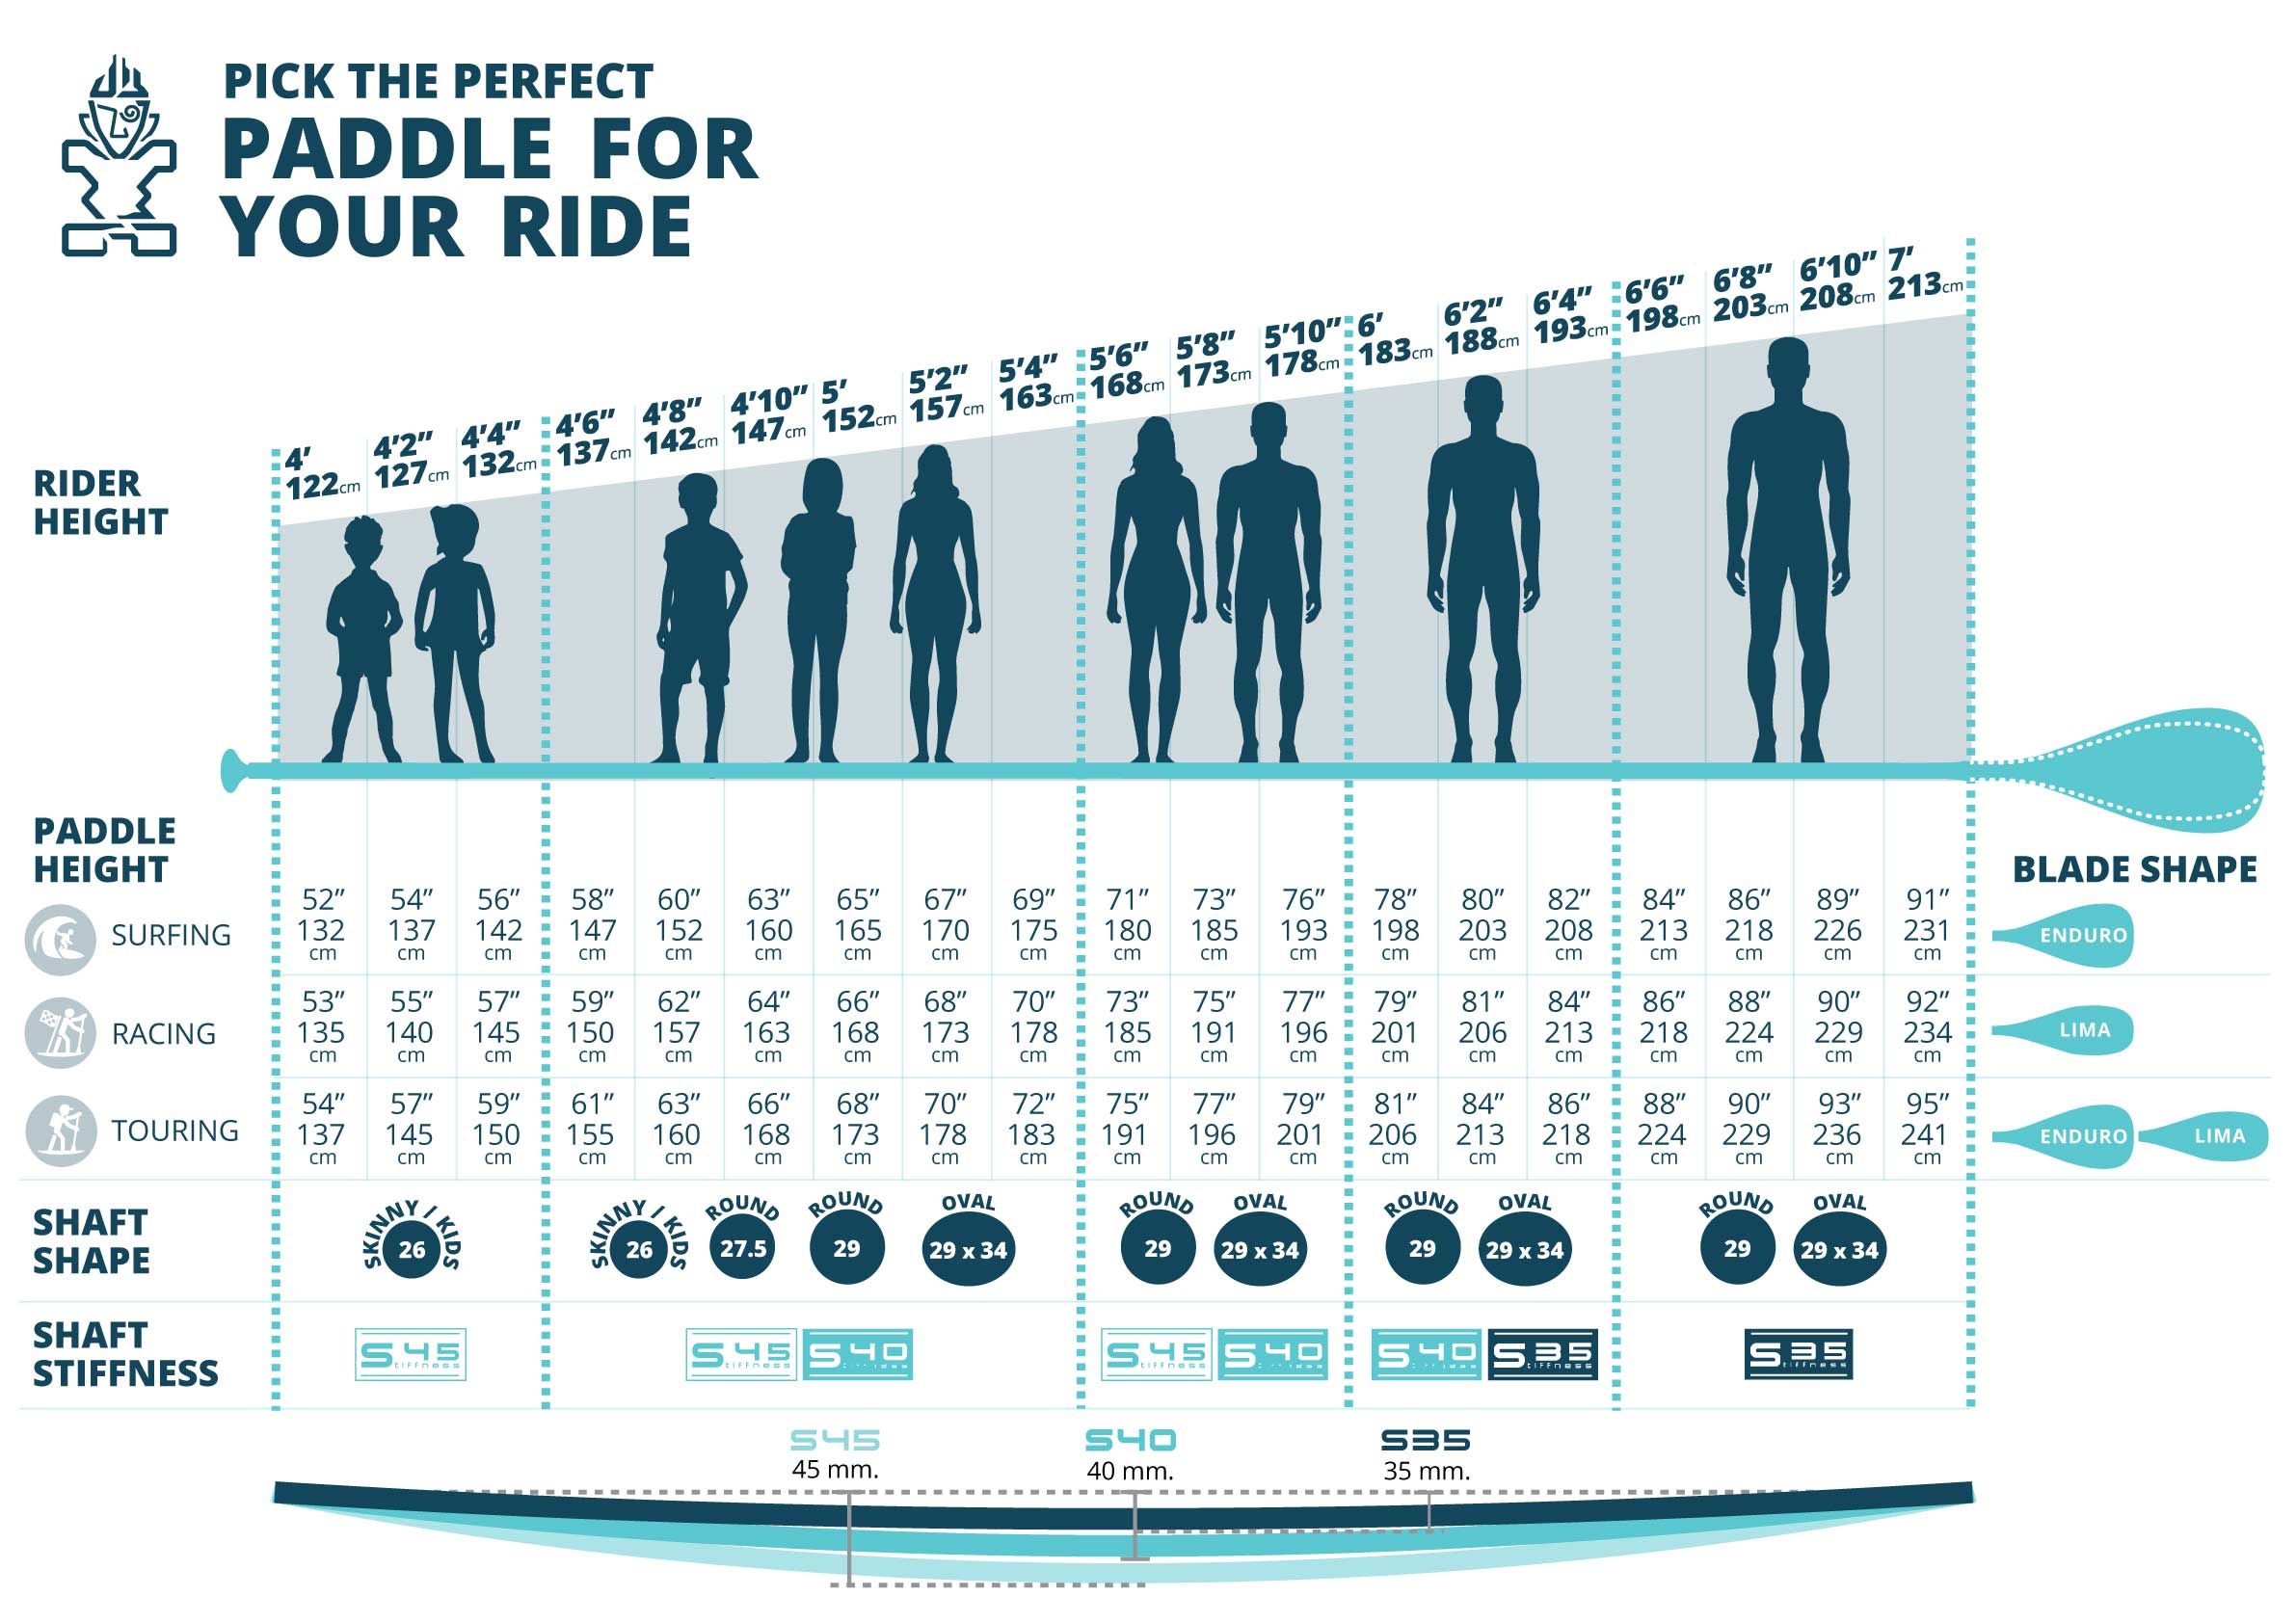 Paddle Setup Chart - The Definitive Guide to SUP Paddles - by Starboard SUP